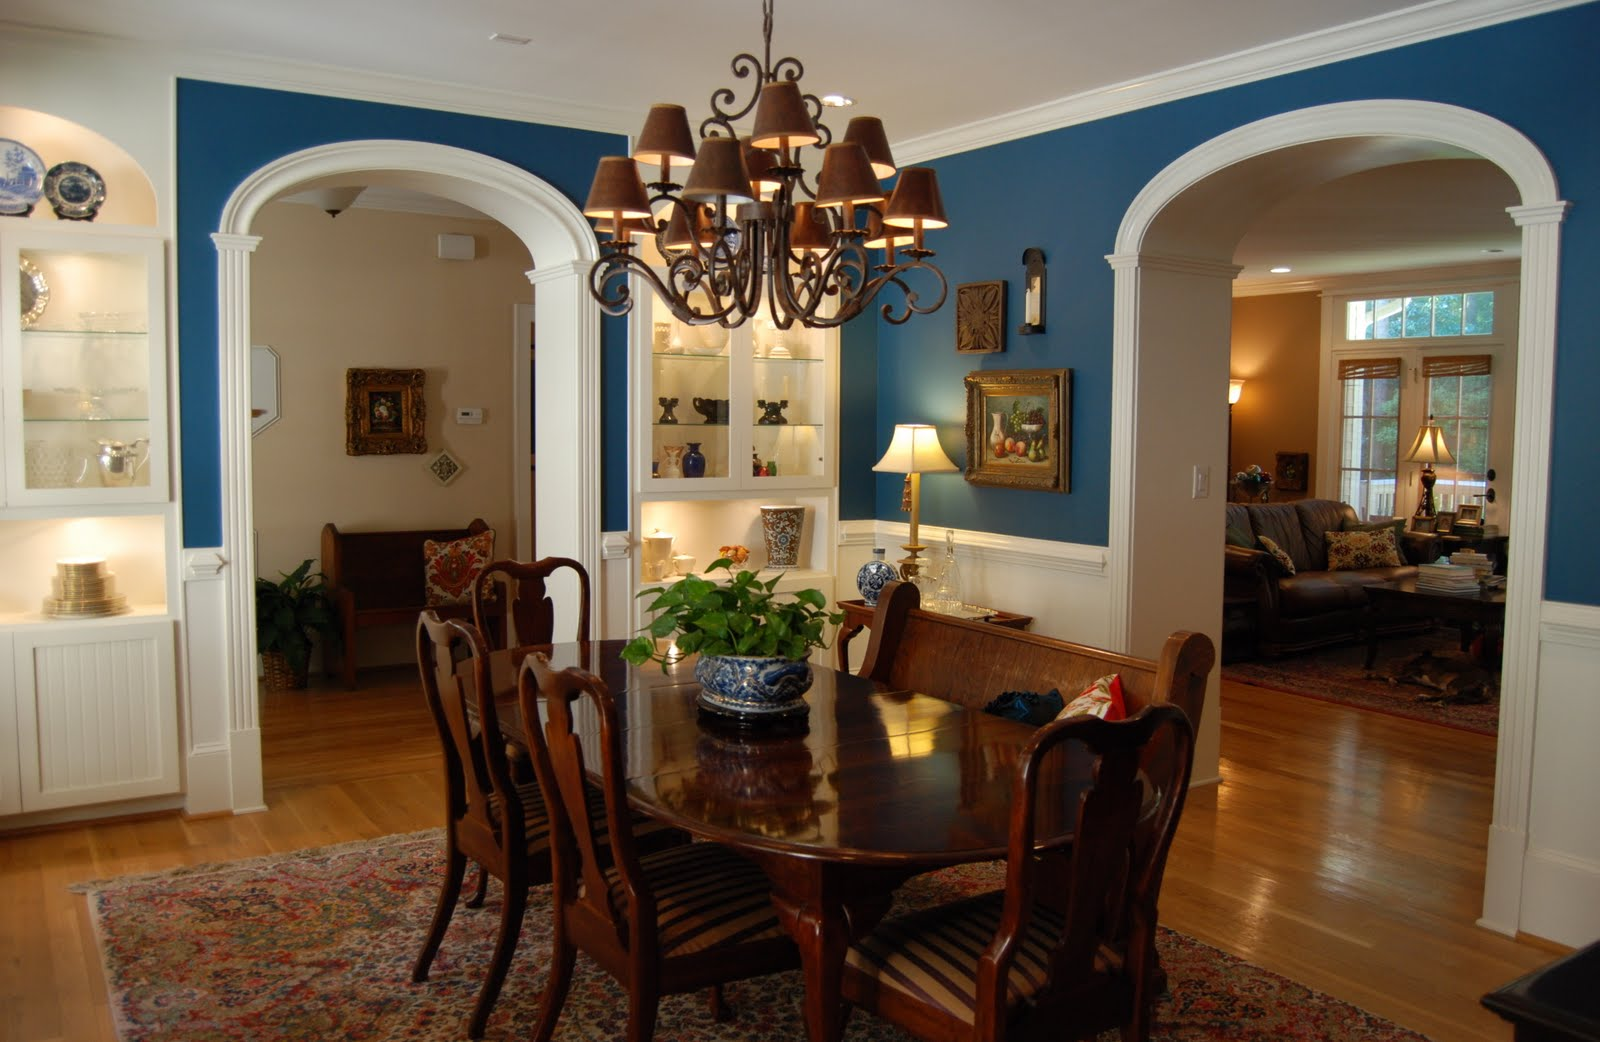 Imparting grace decorating my dining room for Dining room color design ideas